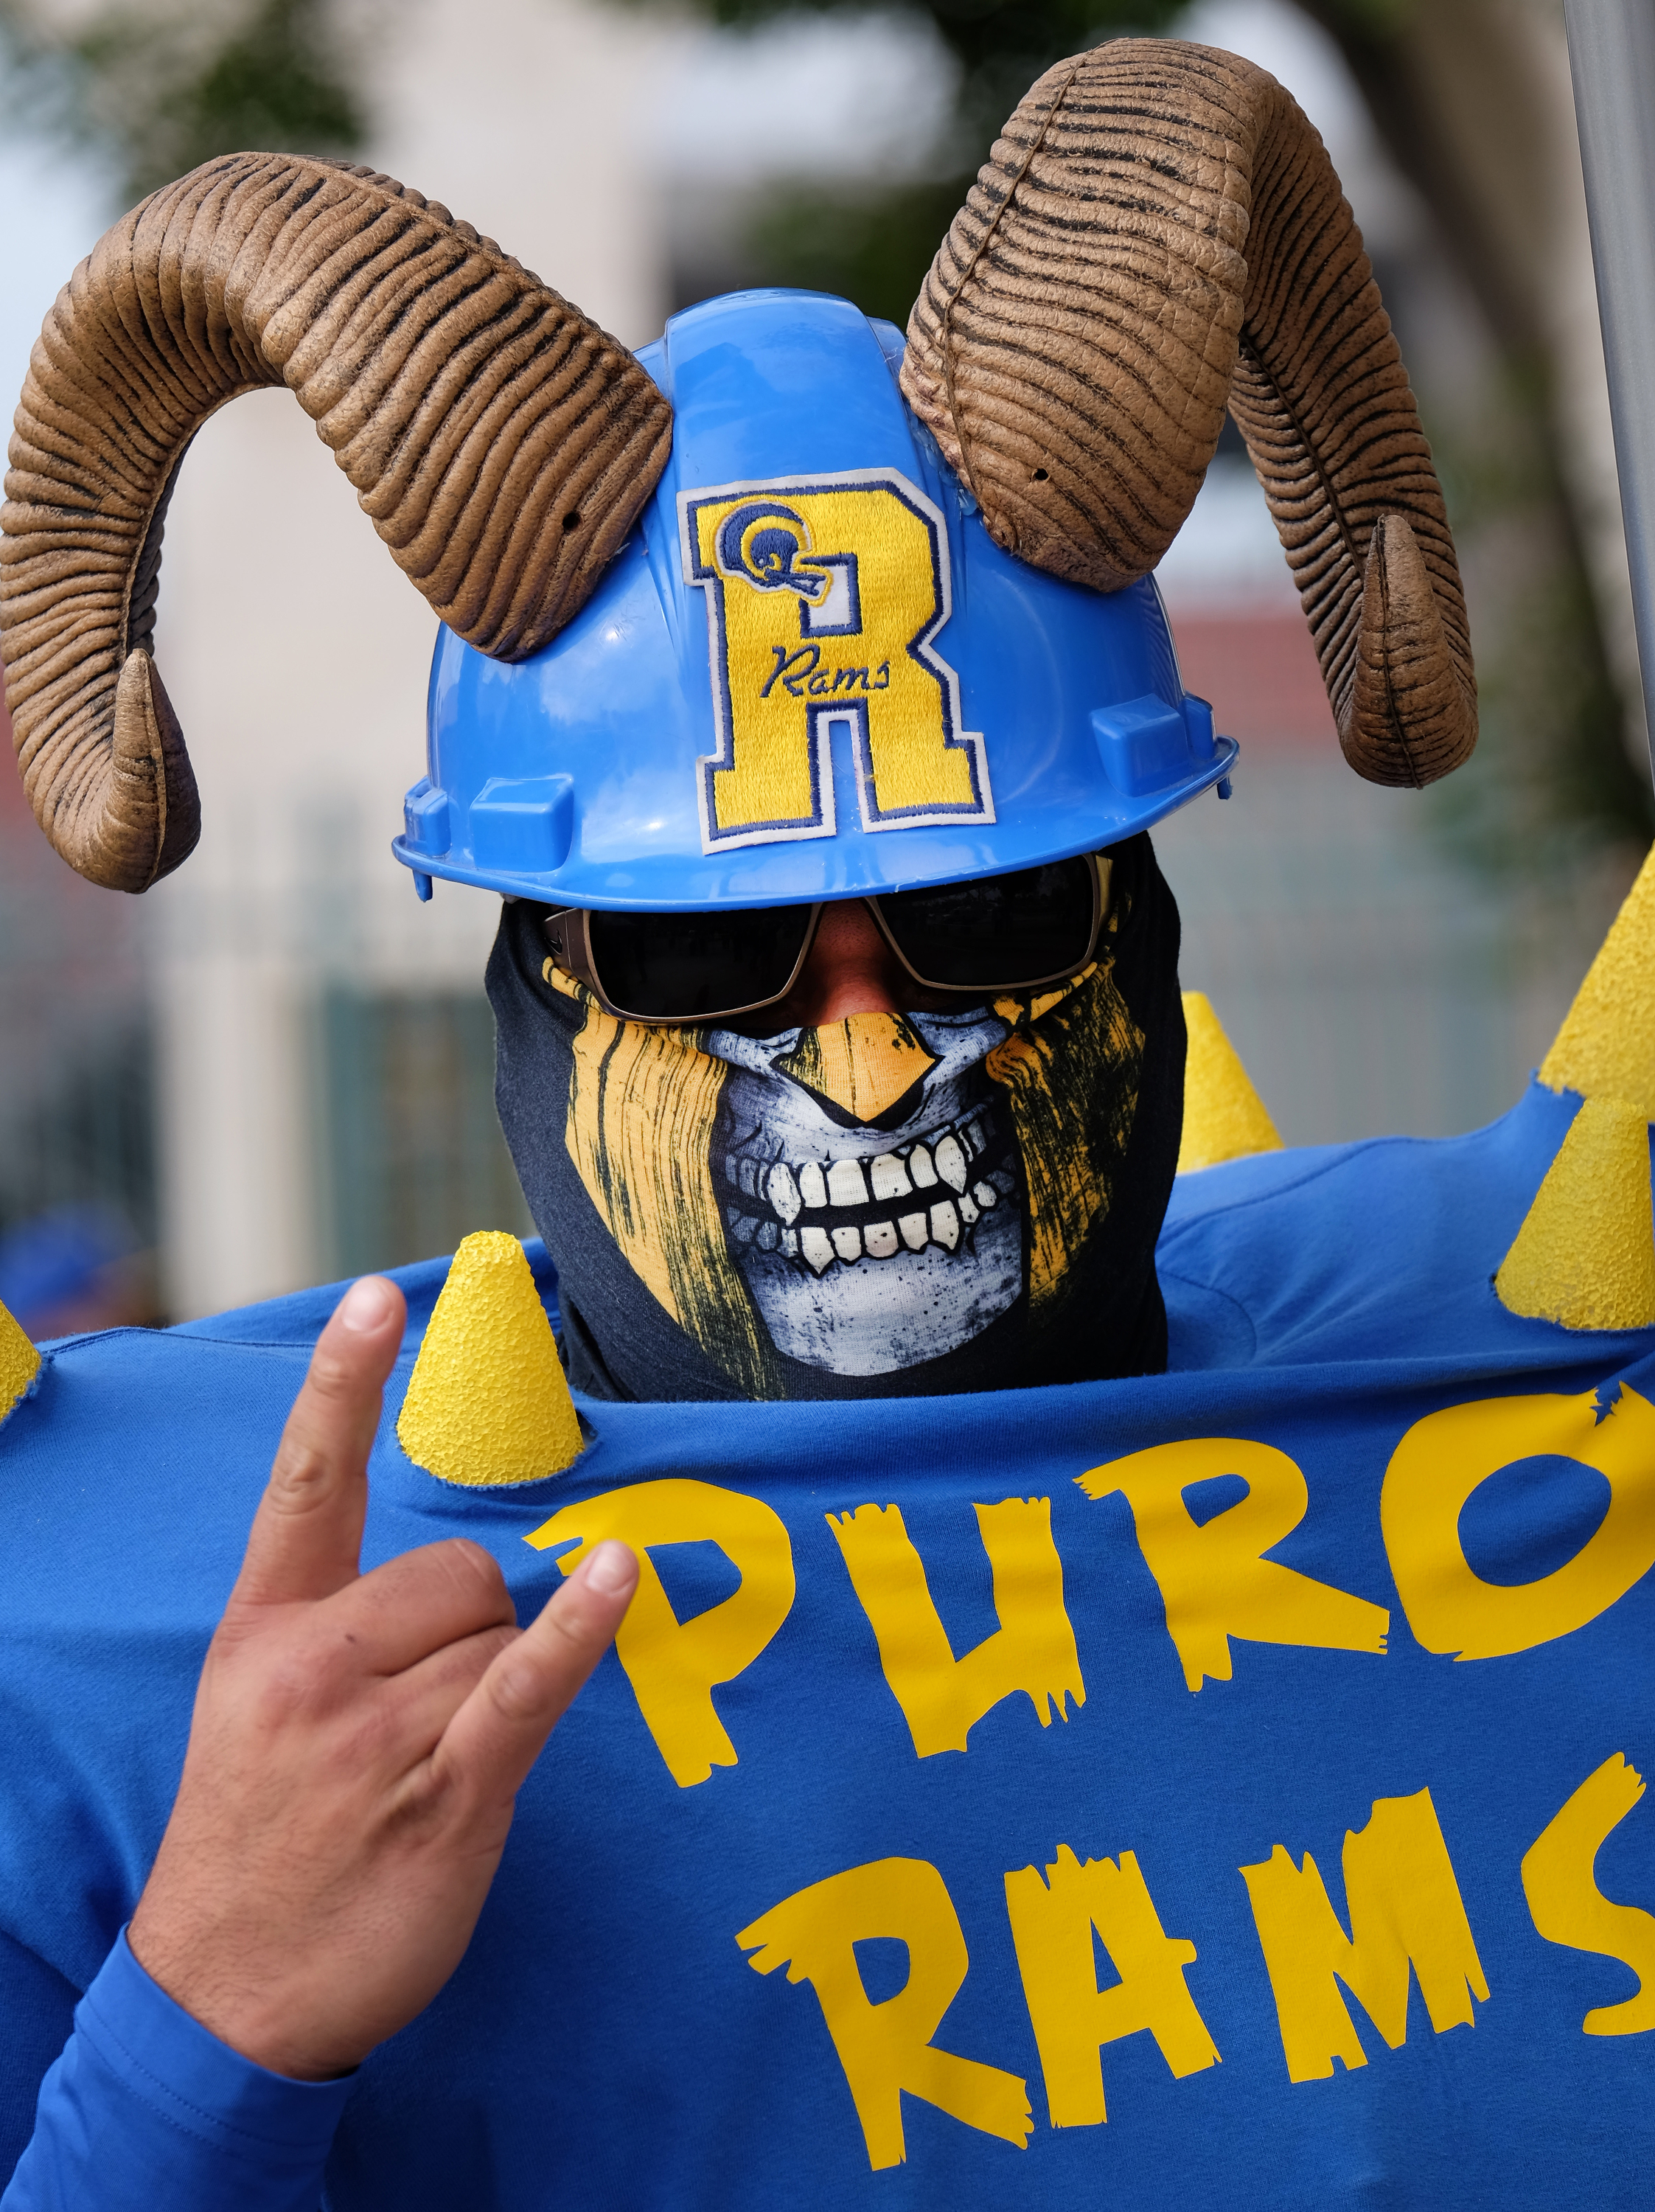 Rams fan Enrique Lopez, arrives for a rally at the historic Los Angeles Memorial Coliseum. Saturday, Jan. 9, 2016 in Los Angeles. Boisterous Los Angeles Rams fans gathered Saturday to herald the NFL football team's possibly imminent return to Southern Cal